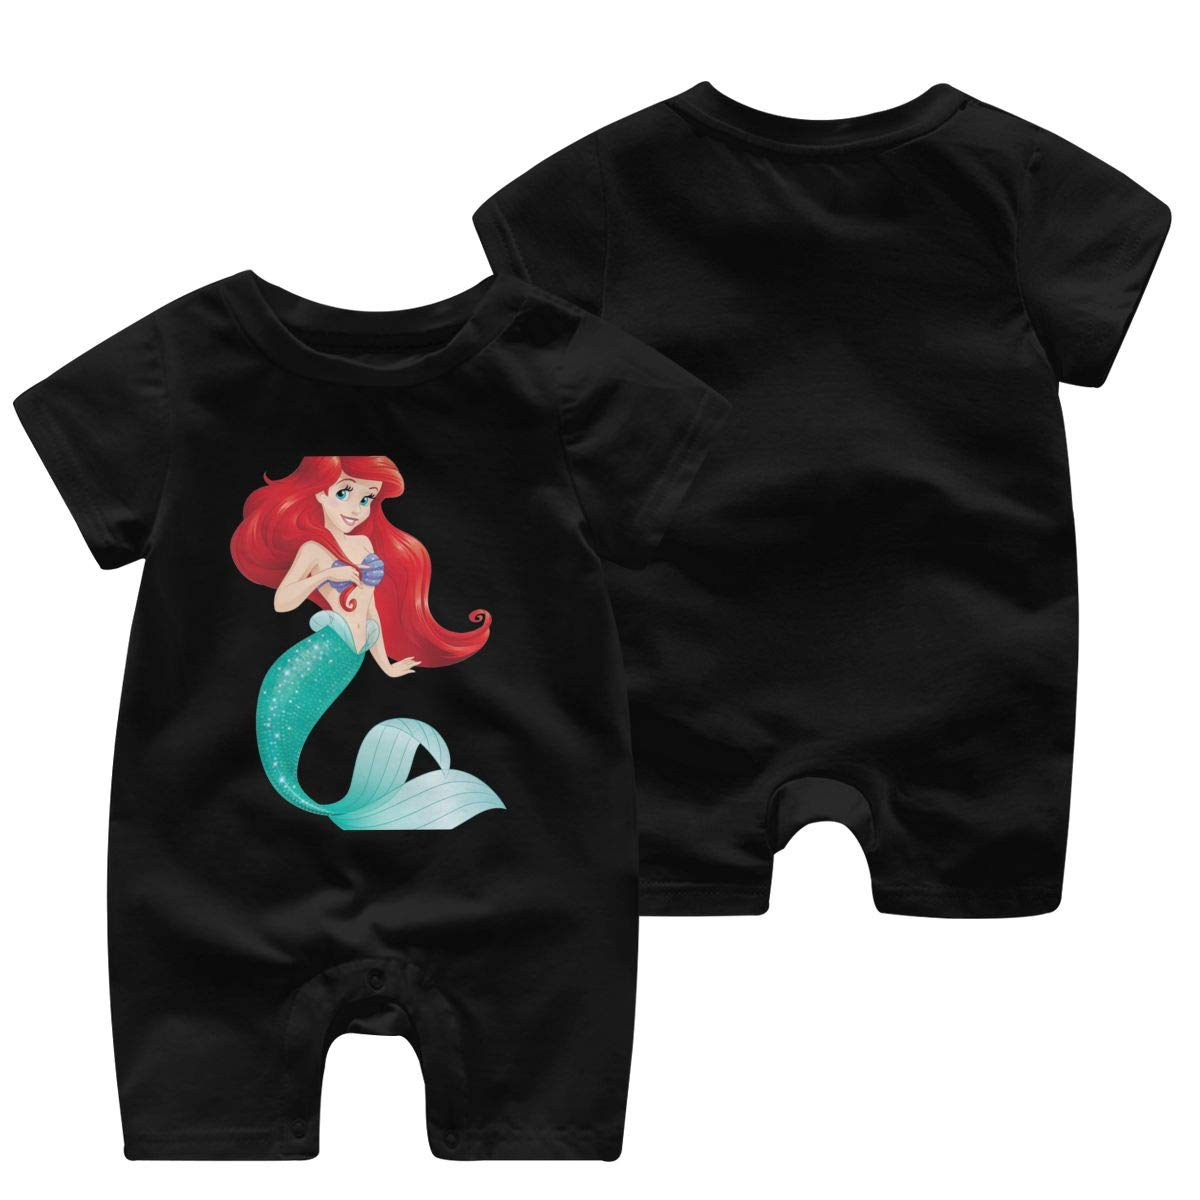 Baby Infant Boy Girl Short Sleeve Red Hair Mermaid Jumpsuit Romper Pajamas Clothes Summer Outfits Black